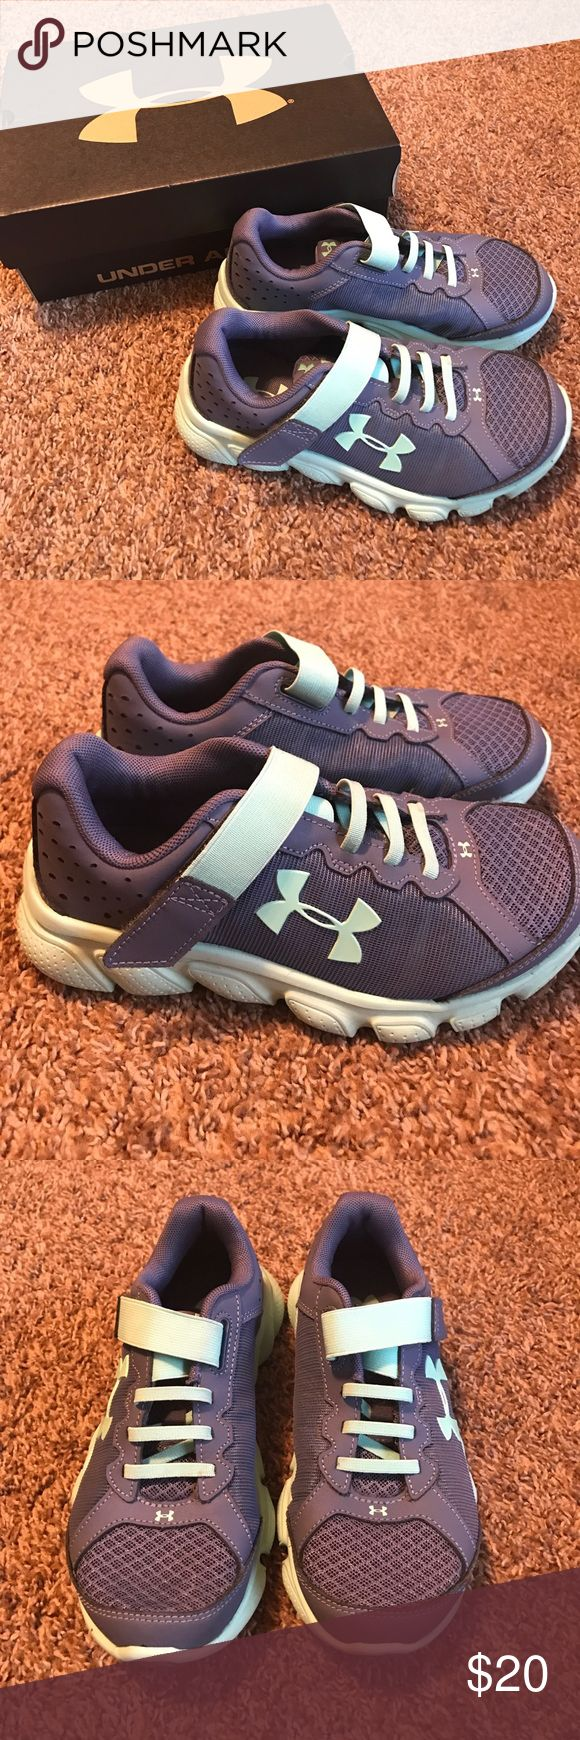 Under Armour Girls Tennis Shoes Worn once. Under Armour Shoes